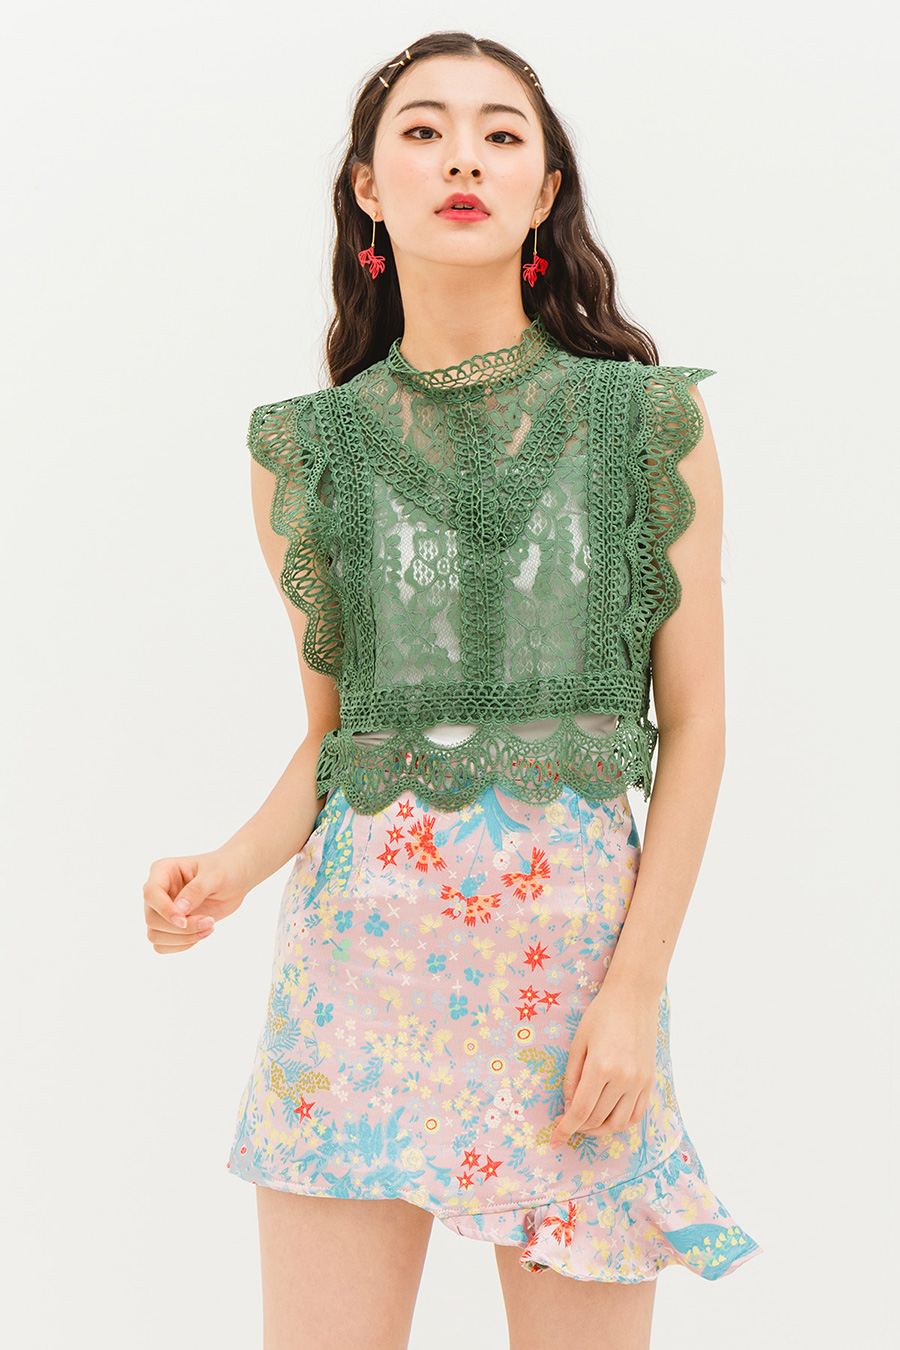 *SALE* KRISTY SKIRT - SPRING GARDEN